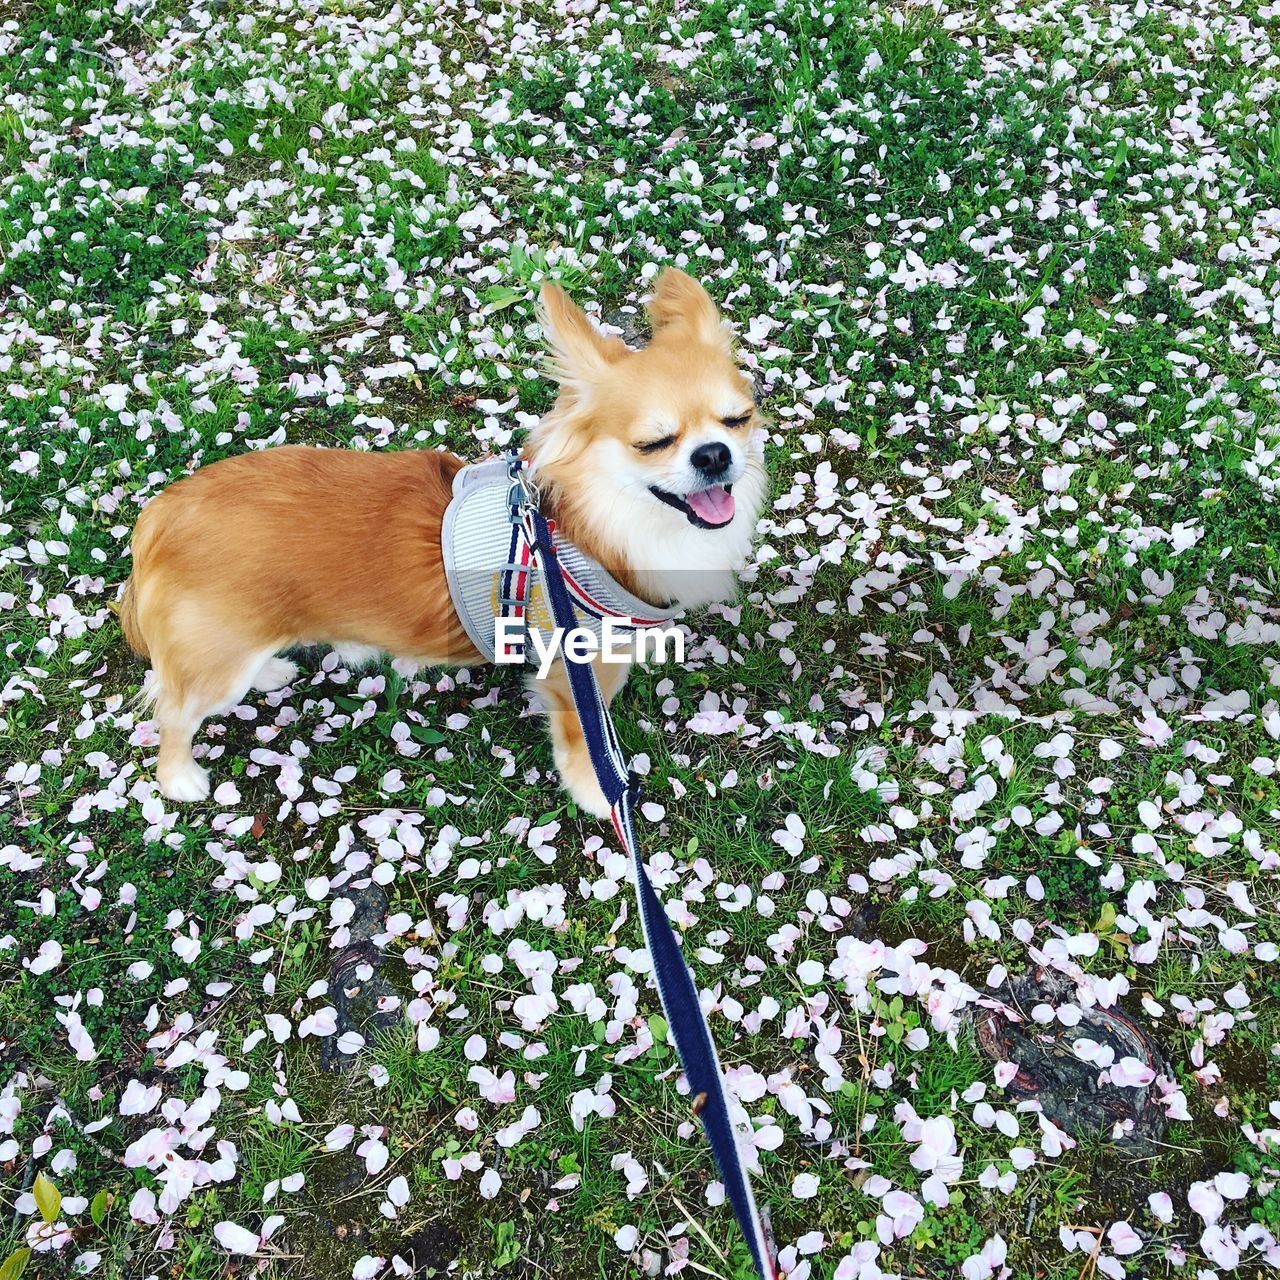 one animal, plant, leash, dog, canine, vertebrate, pets, animal themes, pet leash, mammal, domestic animals, animal, domestic, growth, flower, flowering plant, pet collar, nature, collar, no people, outdoors, mouth open